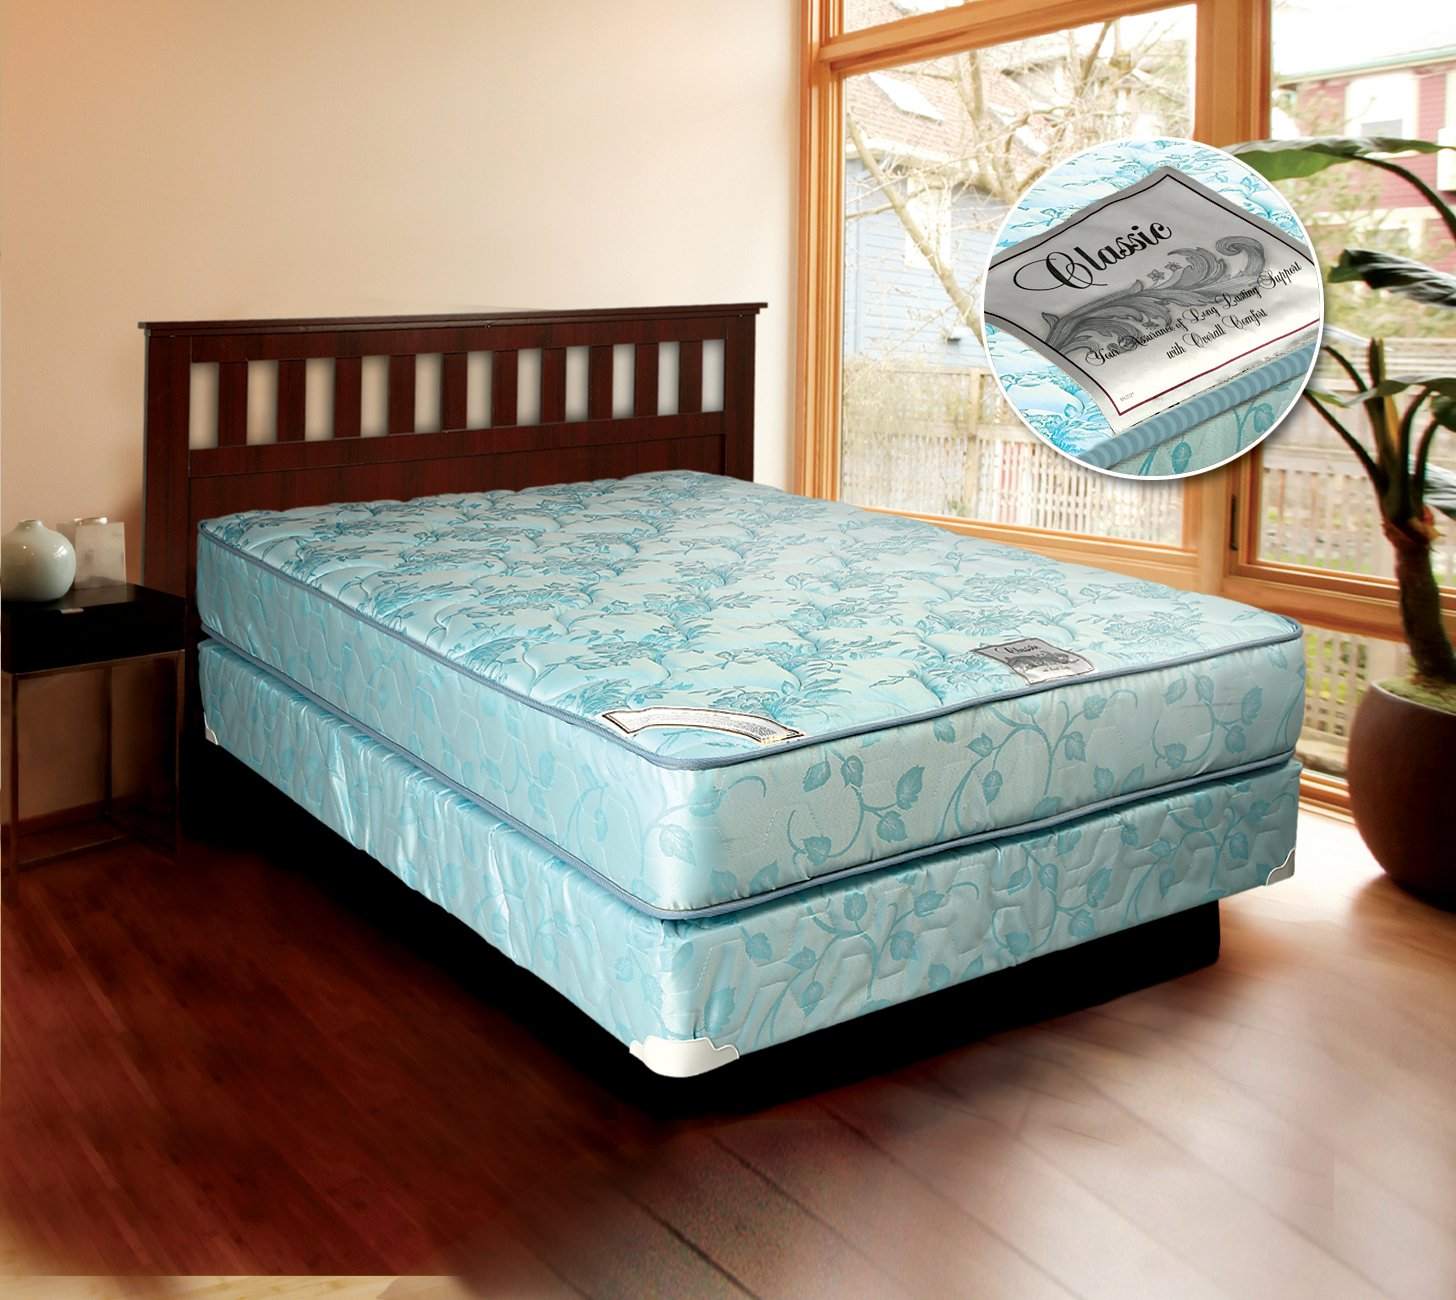 memory foam kids sheets size sleigh beds frame guest double tips full using beauty captains cal the trundle in bed mattress super king